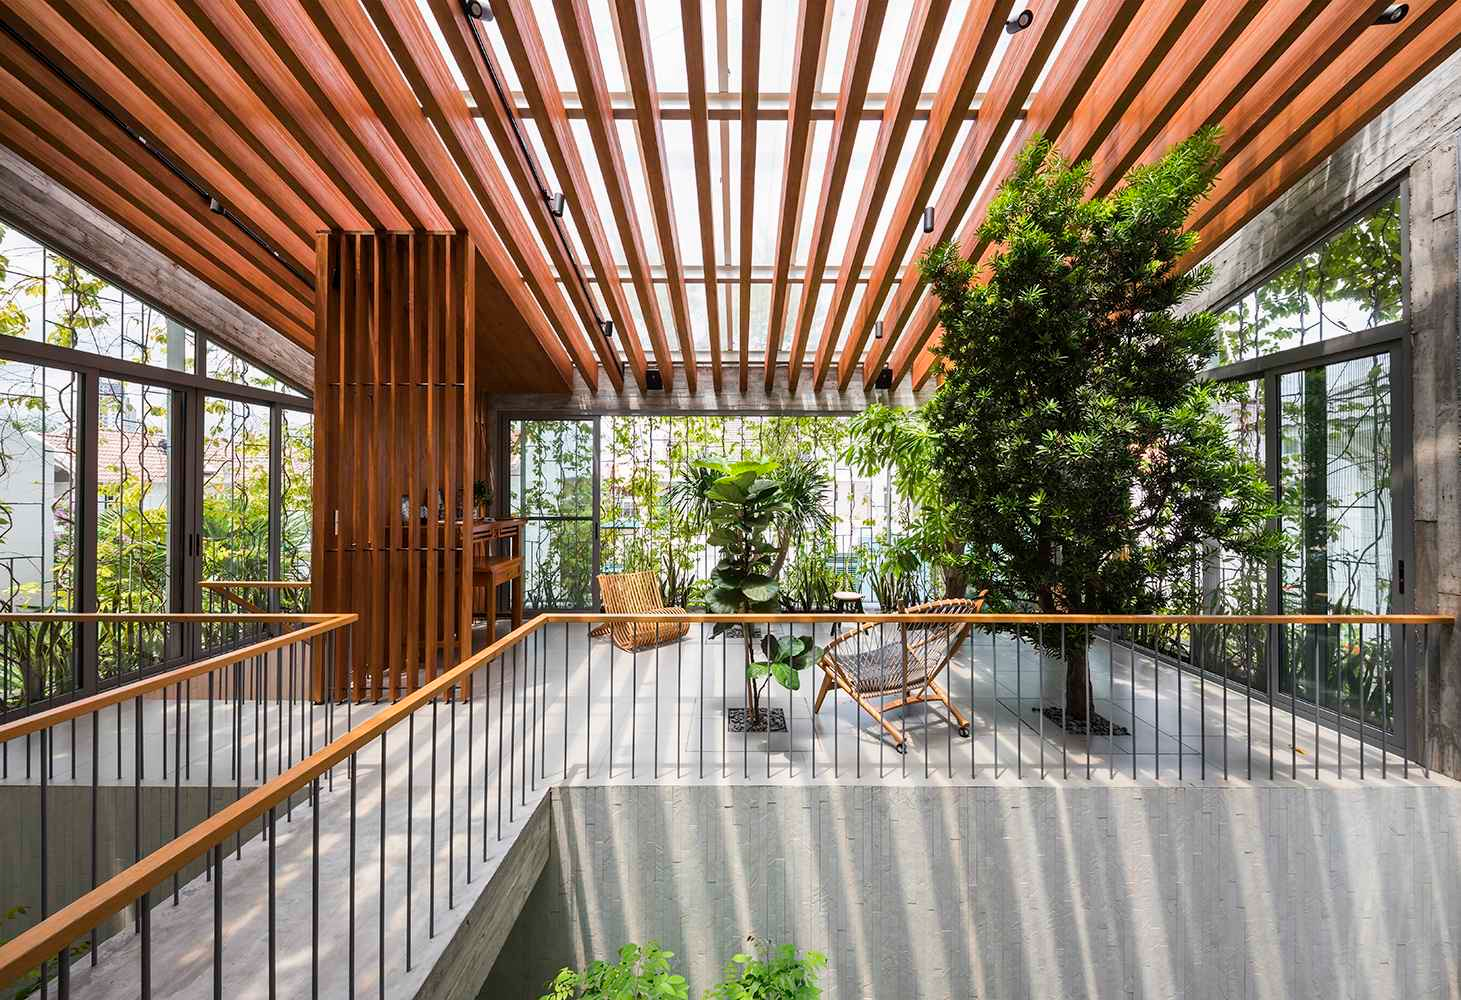 Despite a lot of indoor space, the greenery allows the house to blend seamlessly with its lush green surroundings.